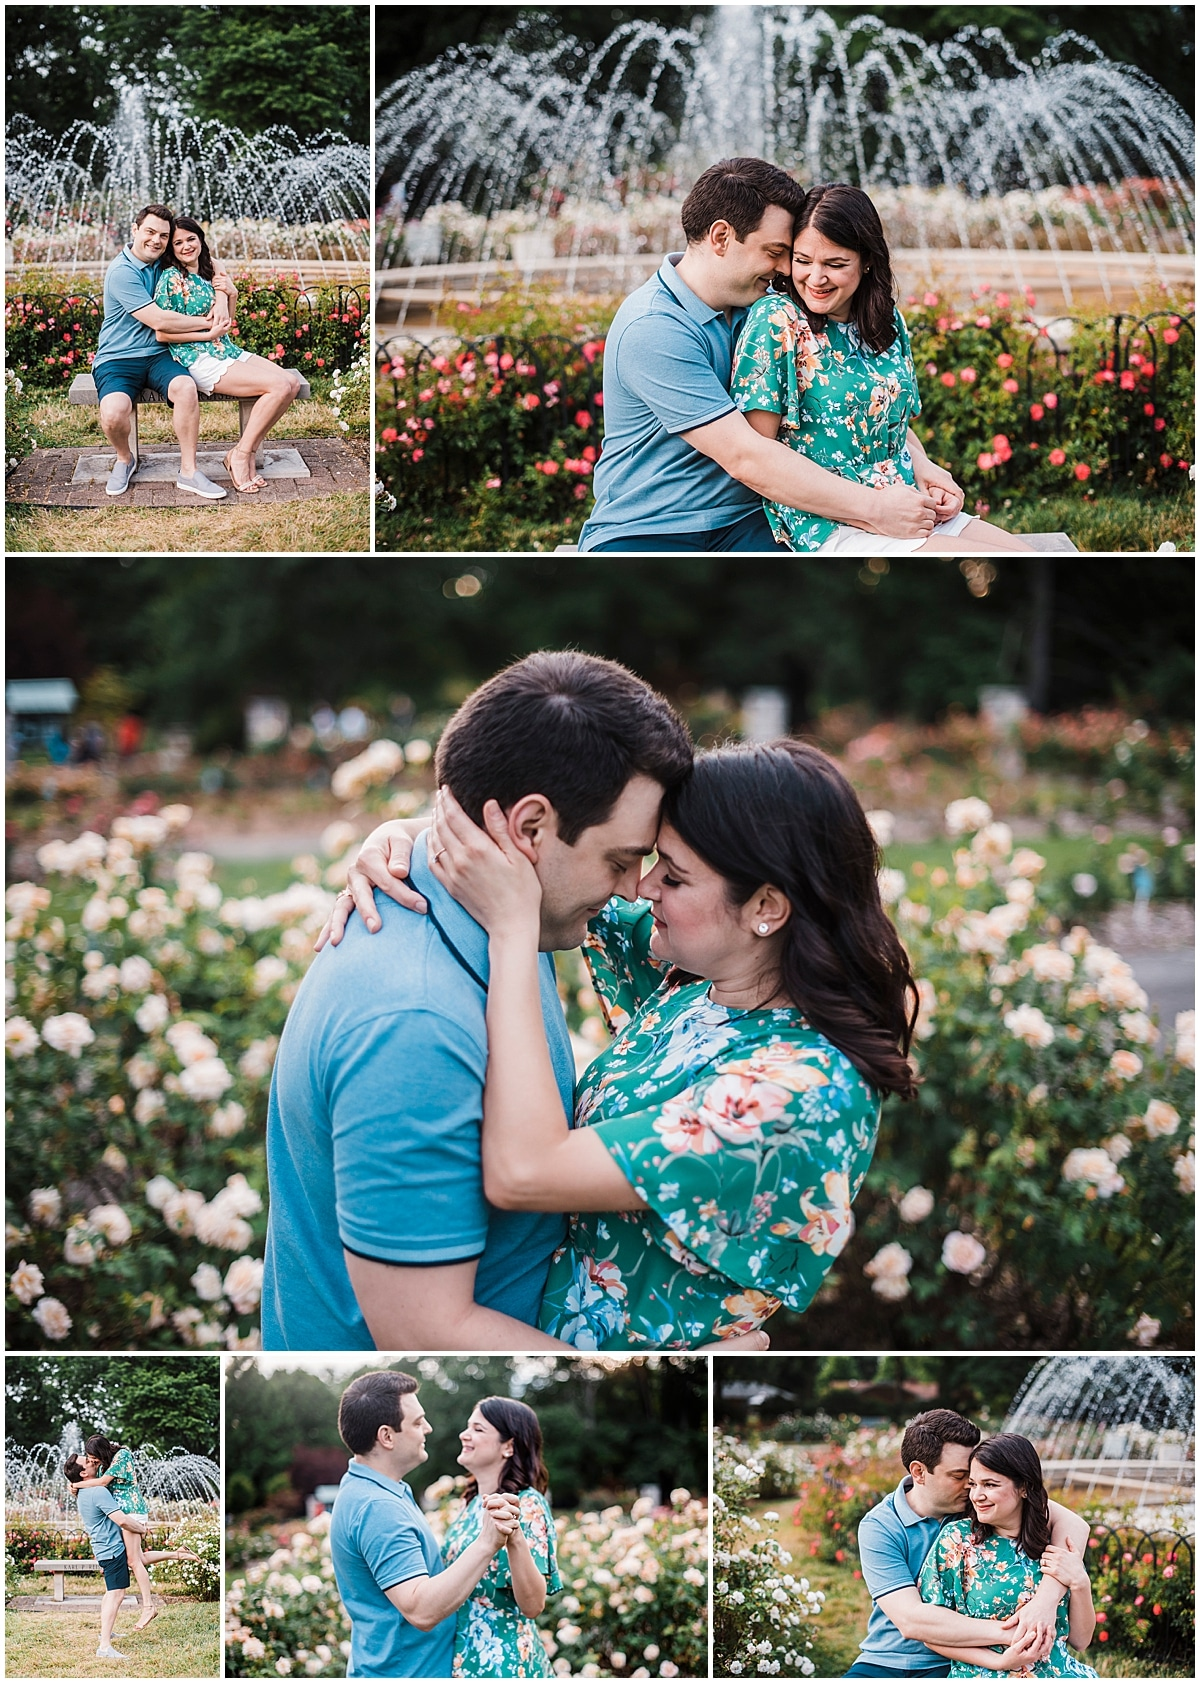 Engagement Session in Park of Roses